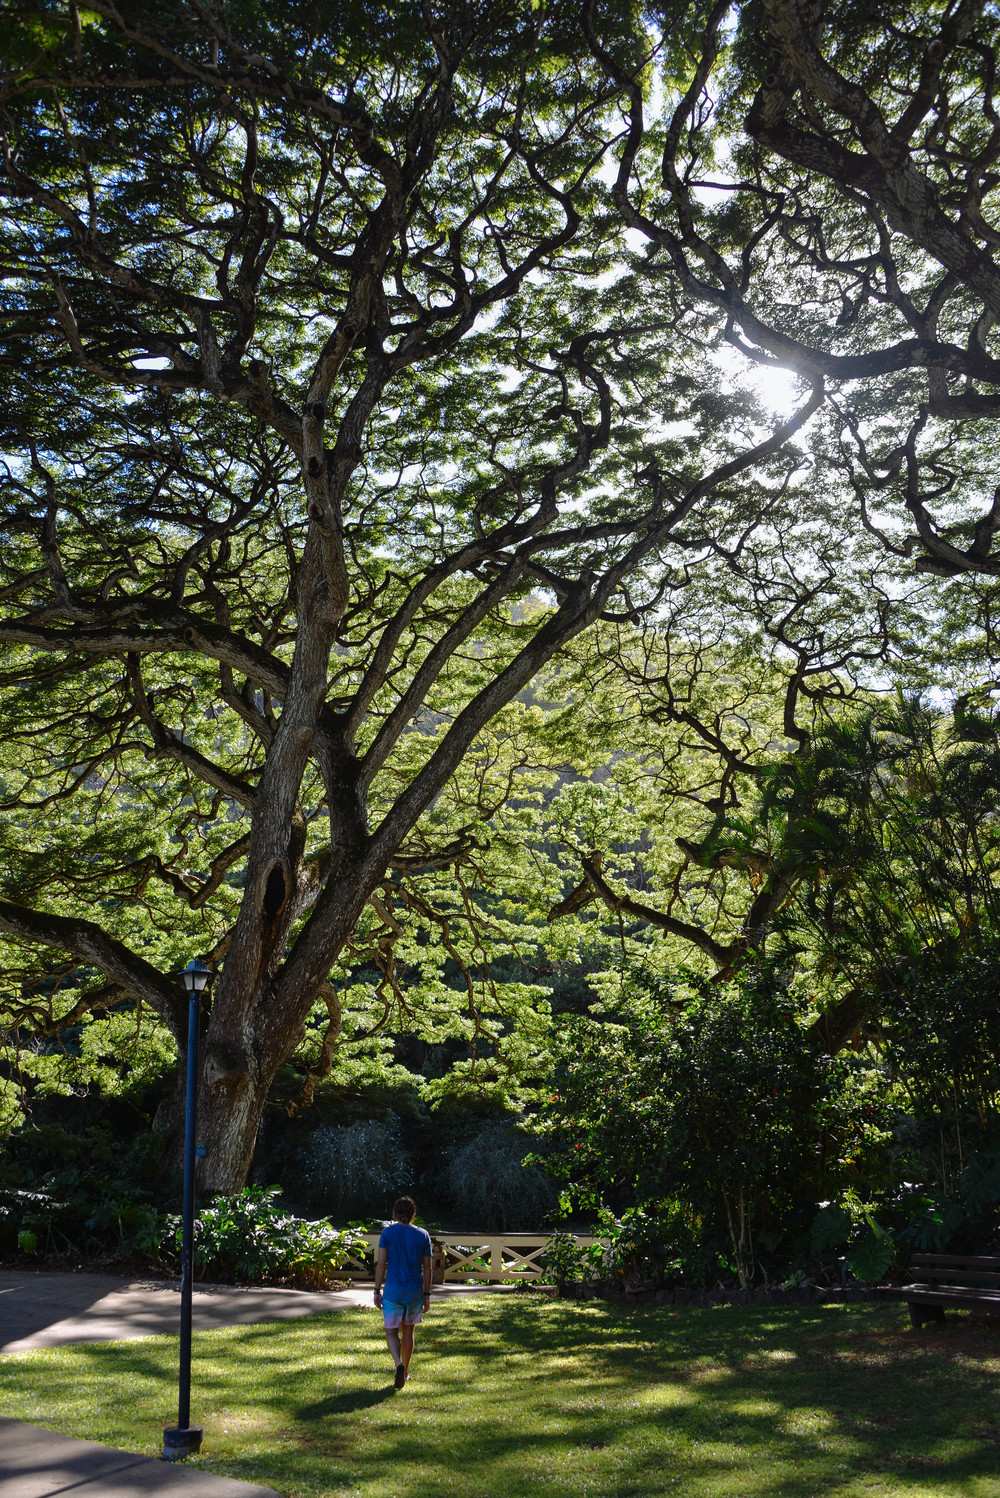 Jonny strolling through the Waimea Valley gardens on Oahu.